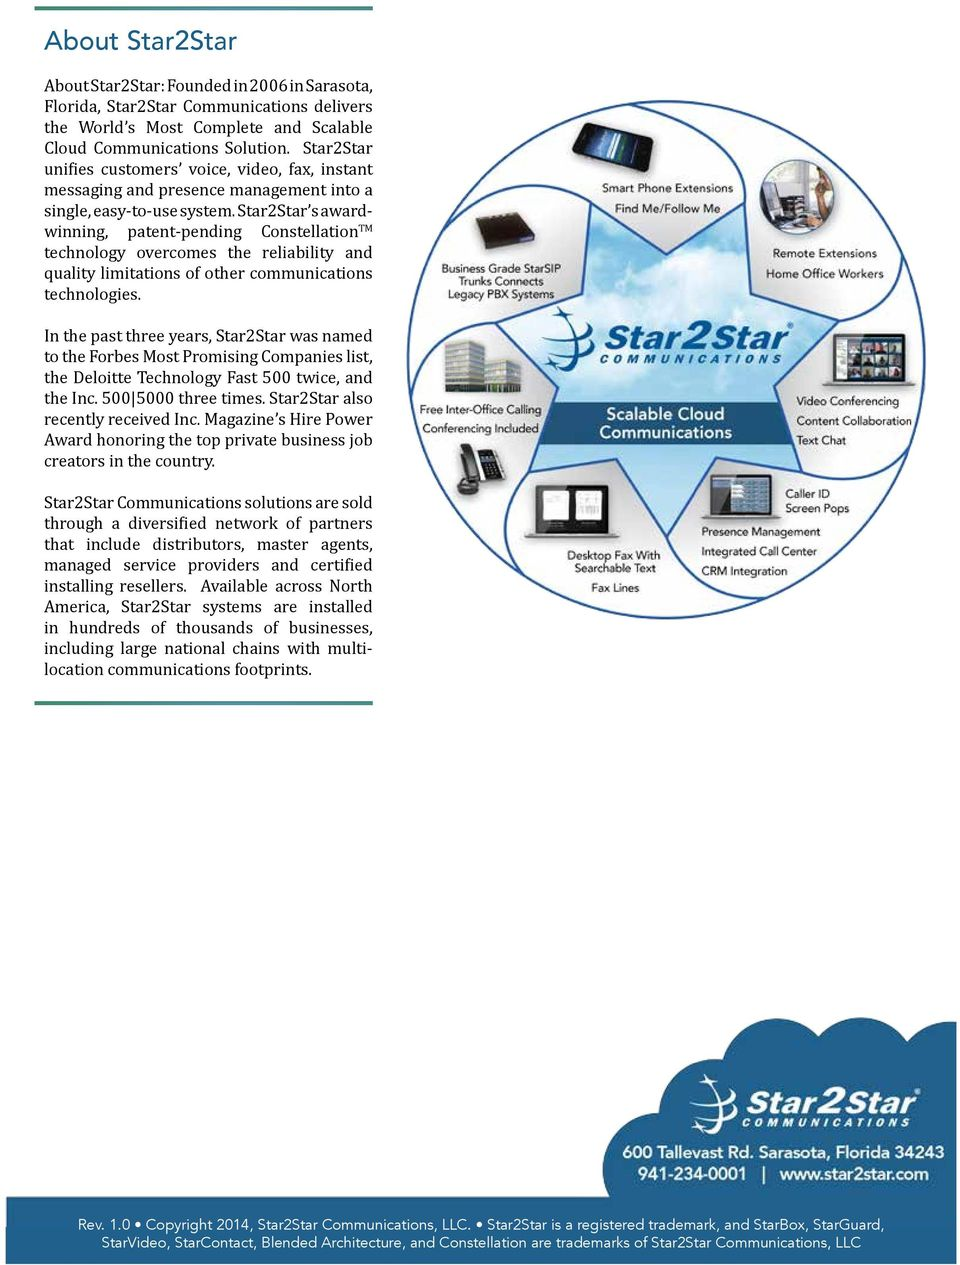 Star2Star s awardwinning, patent-pending Constellation TM technology overcomes the reliability and quality limitations of other communications technologies.